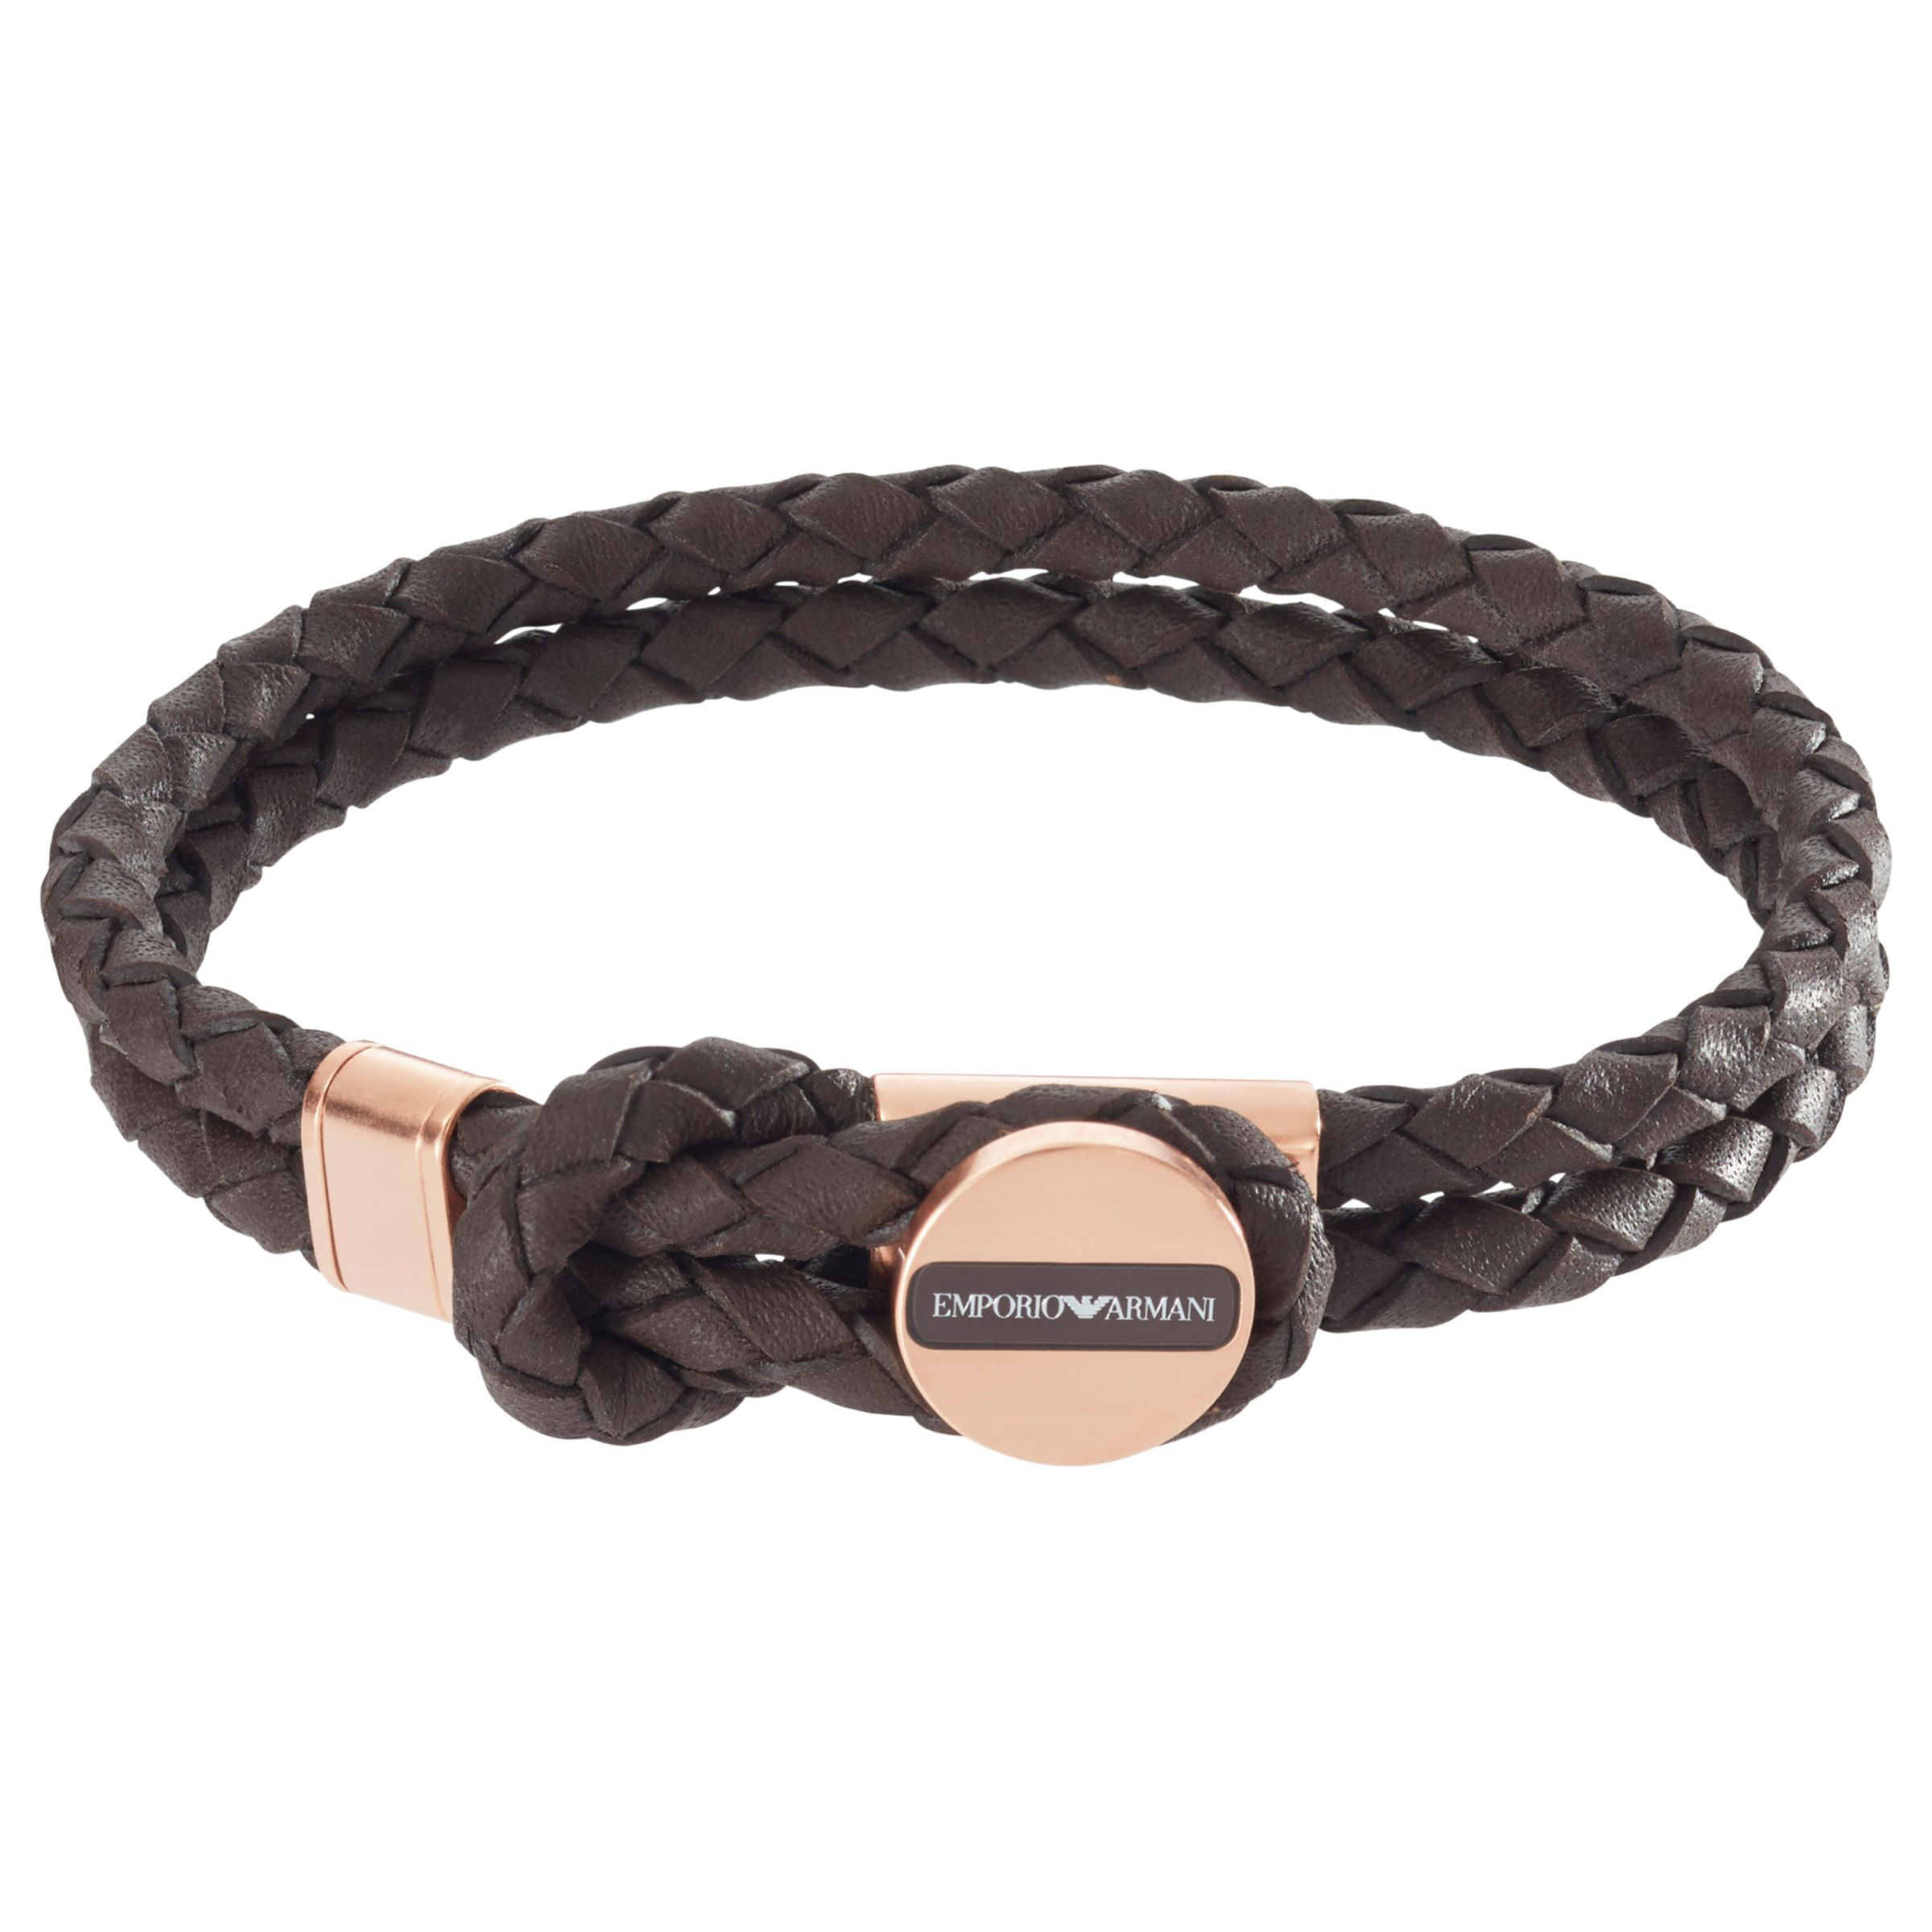 4859ba029075d7 Emporio Armani Men s Braided Leather Bracelet at John Lewis   Partners